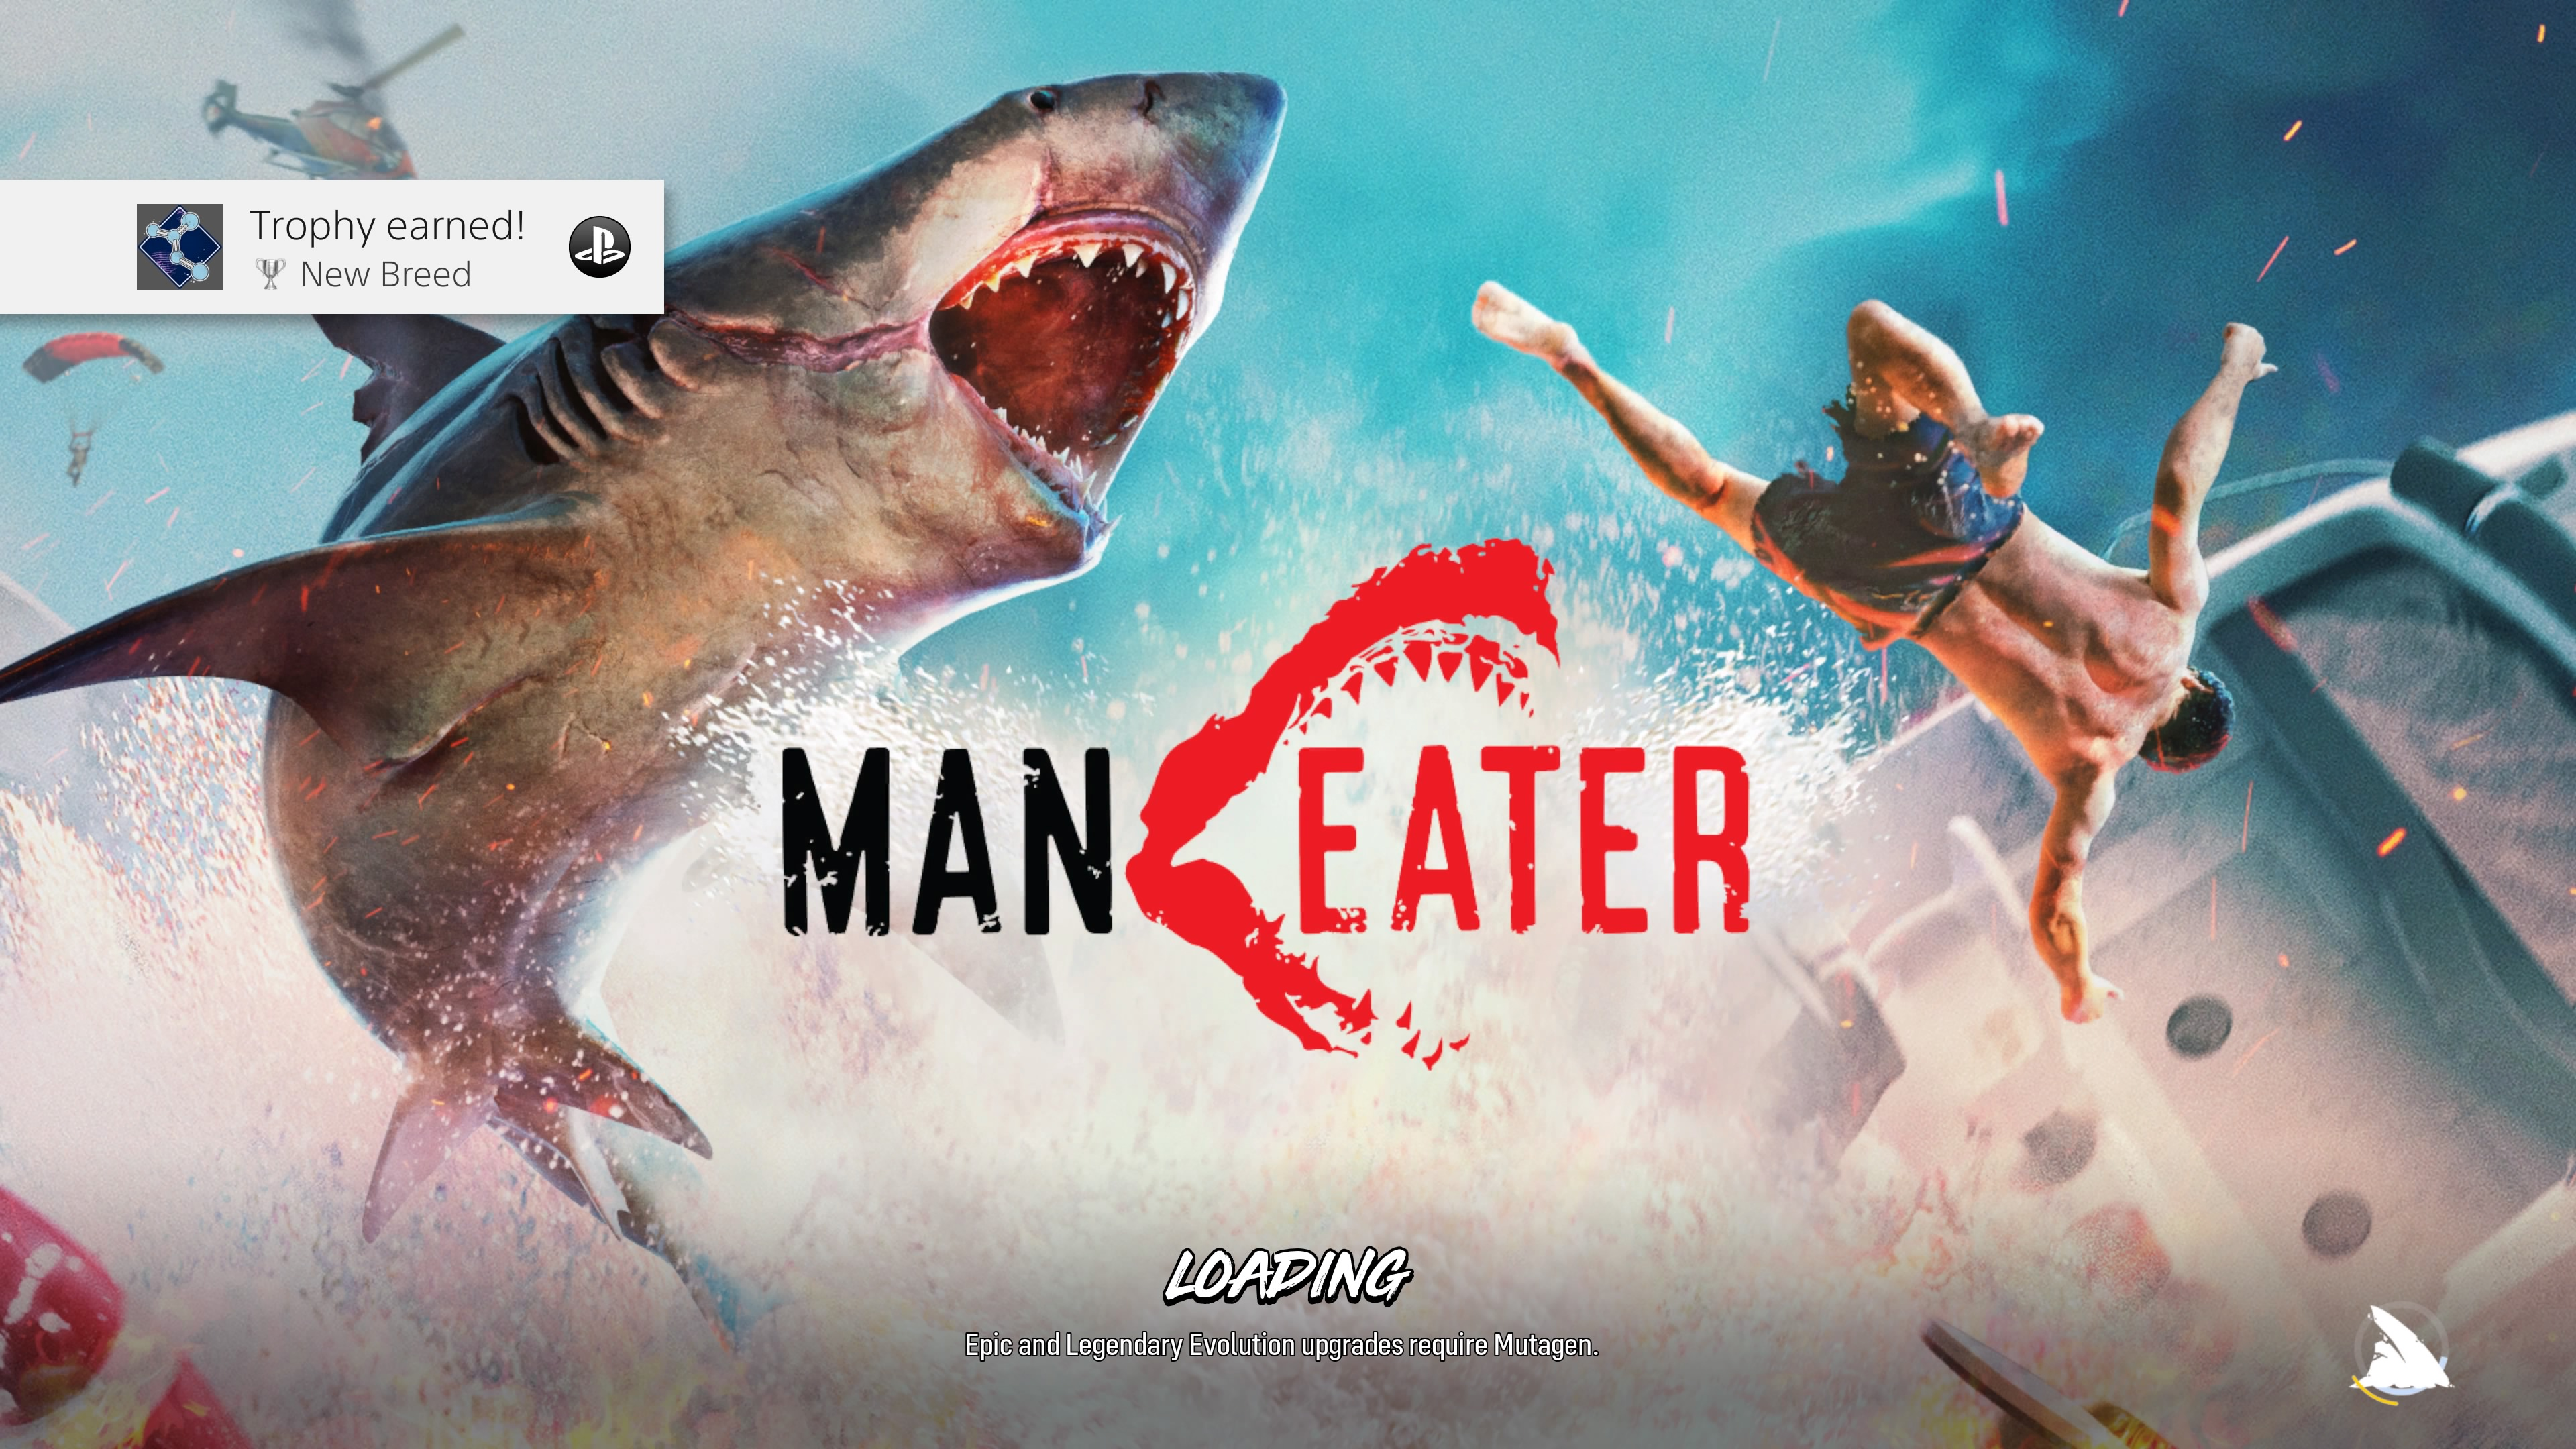 Maneater_20200518233345